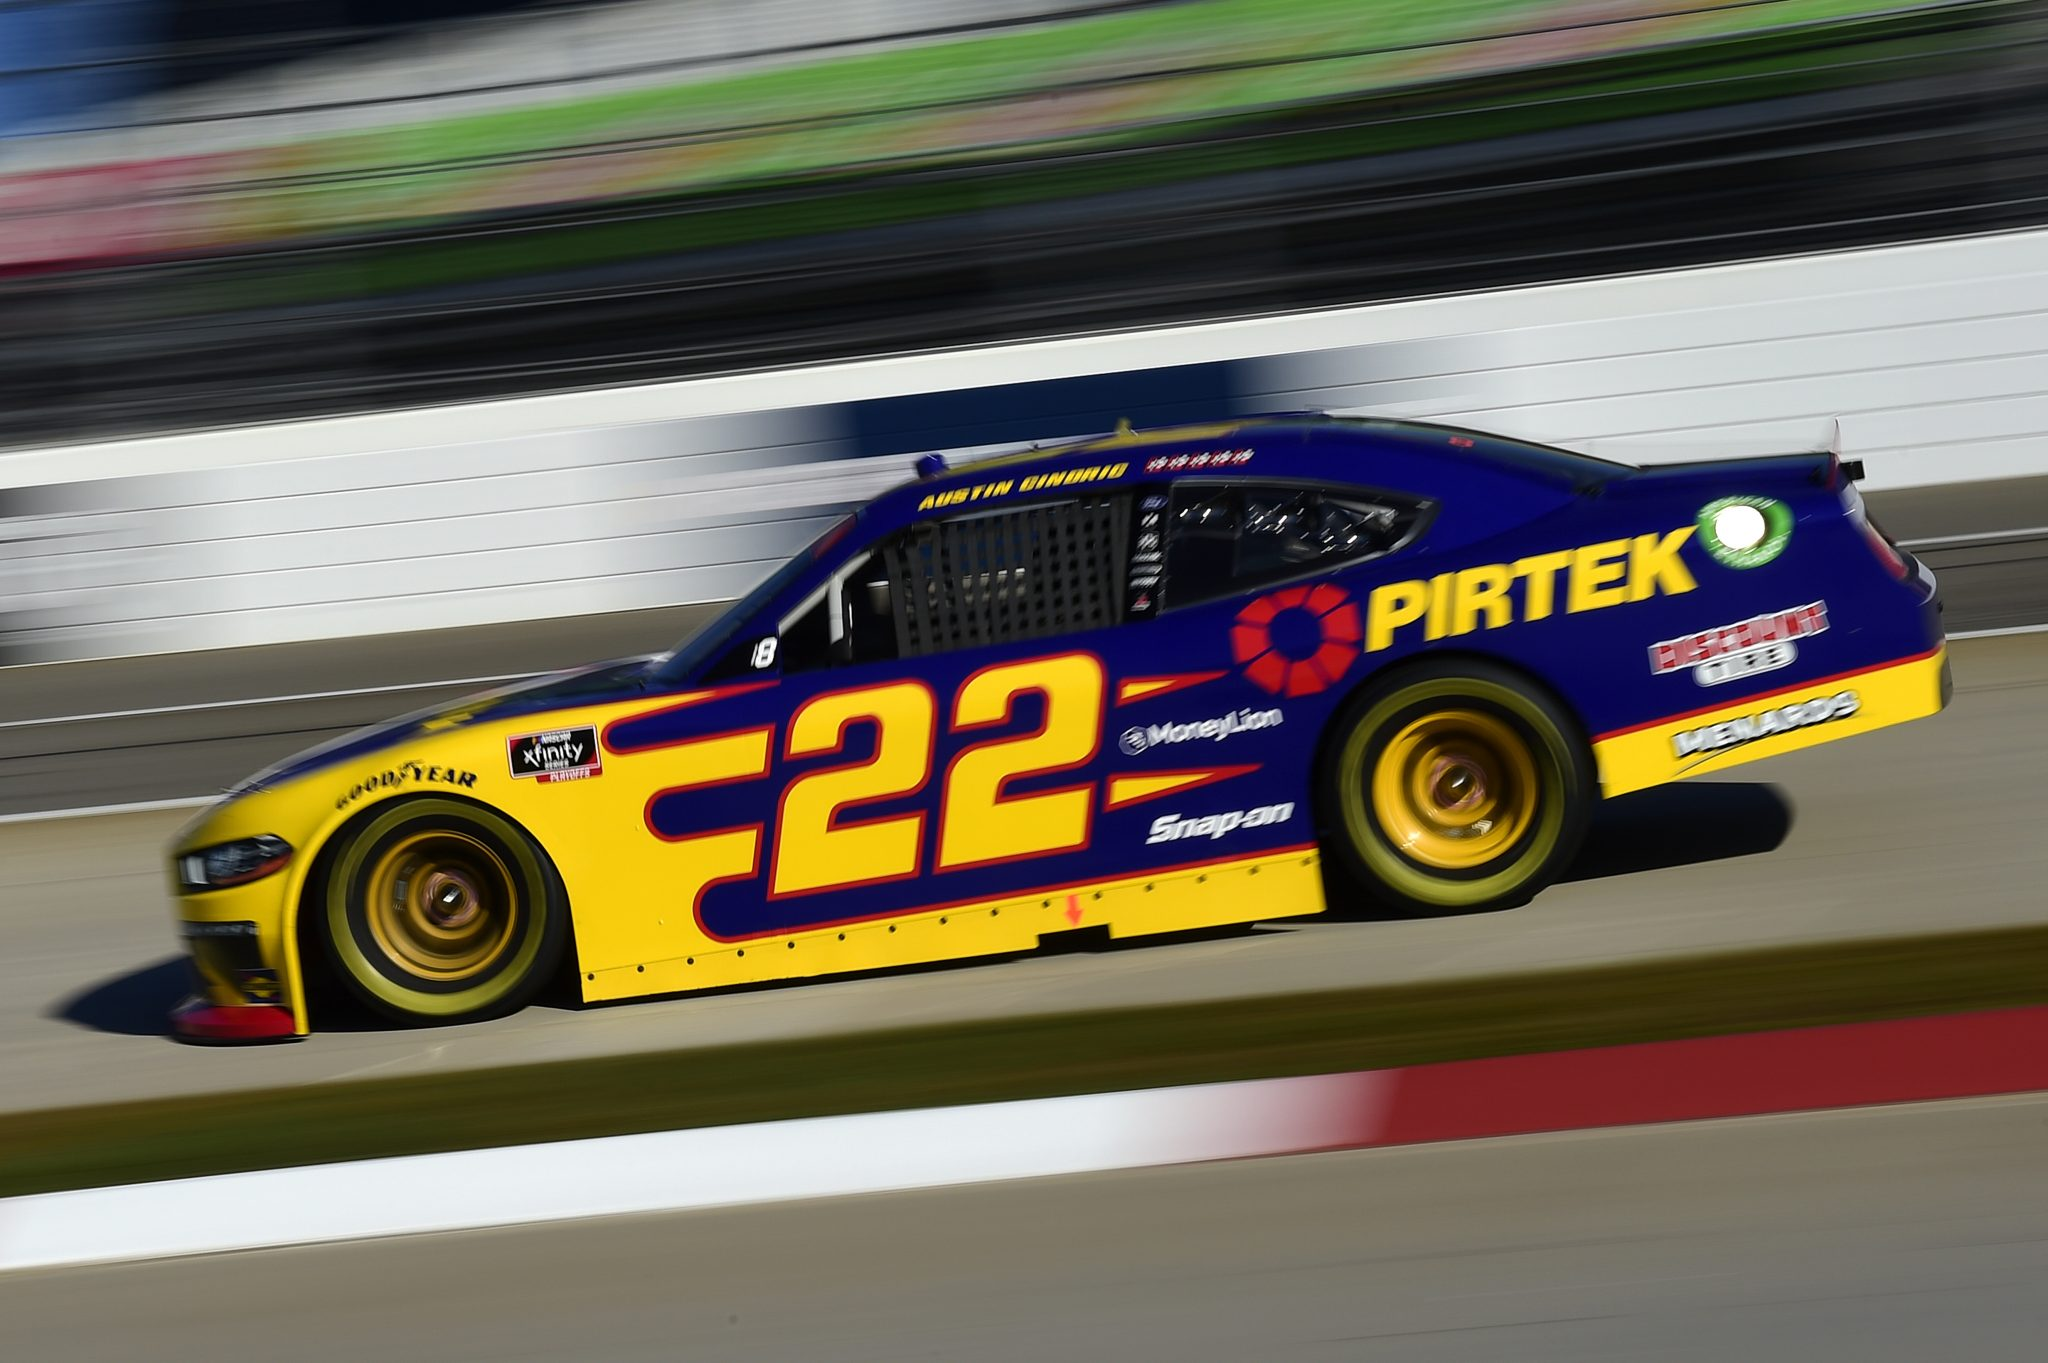 MARTINSVILLE, VIRGINIA - OCTOBER 31: Austin Cindric, driver of the #22 Pirtek Ford, drives during the NASCAR Xfinity Series Draft Top 250 at Martinsville Speedway on October 31, 2020 in Martinsville, Virginia. (Photo by Jared C. Tilton/Getty Images) | Getty Images